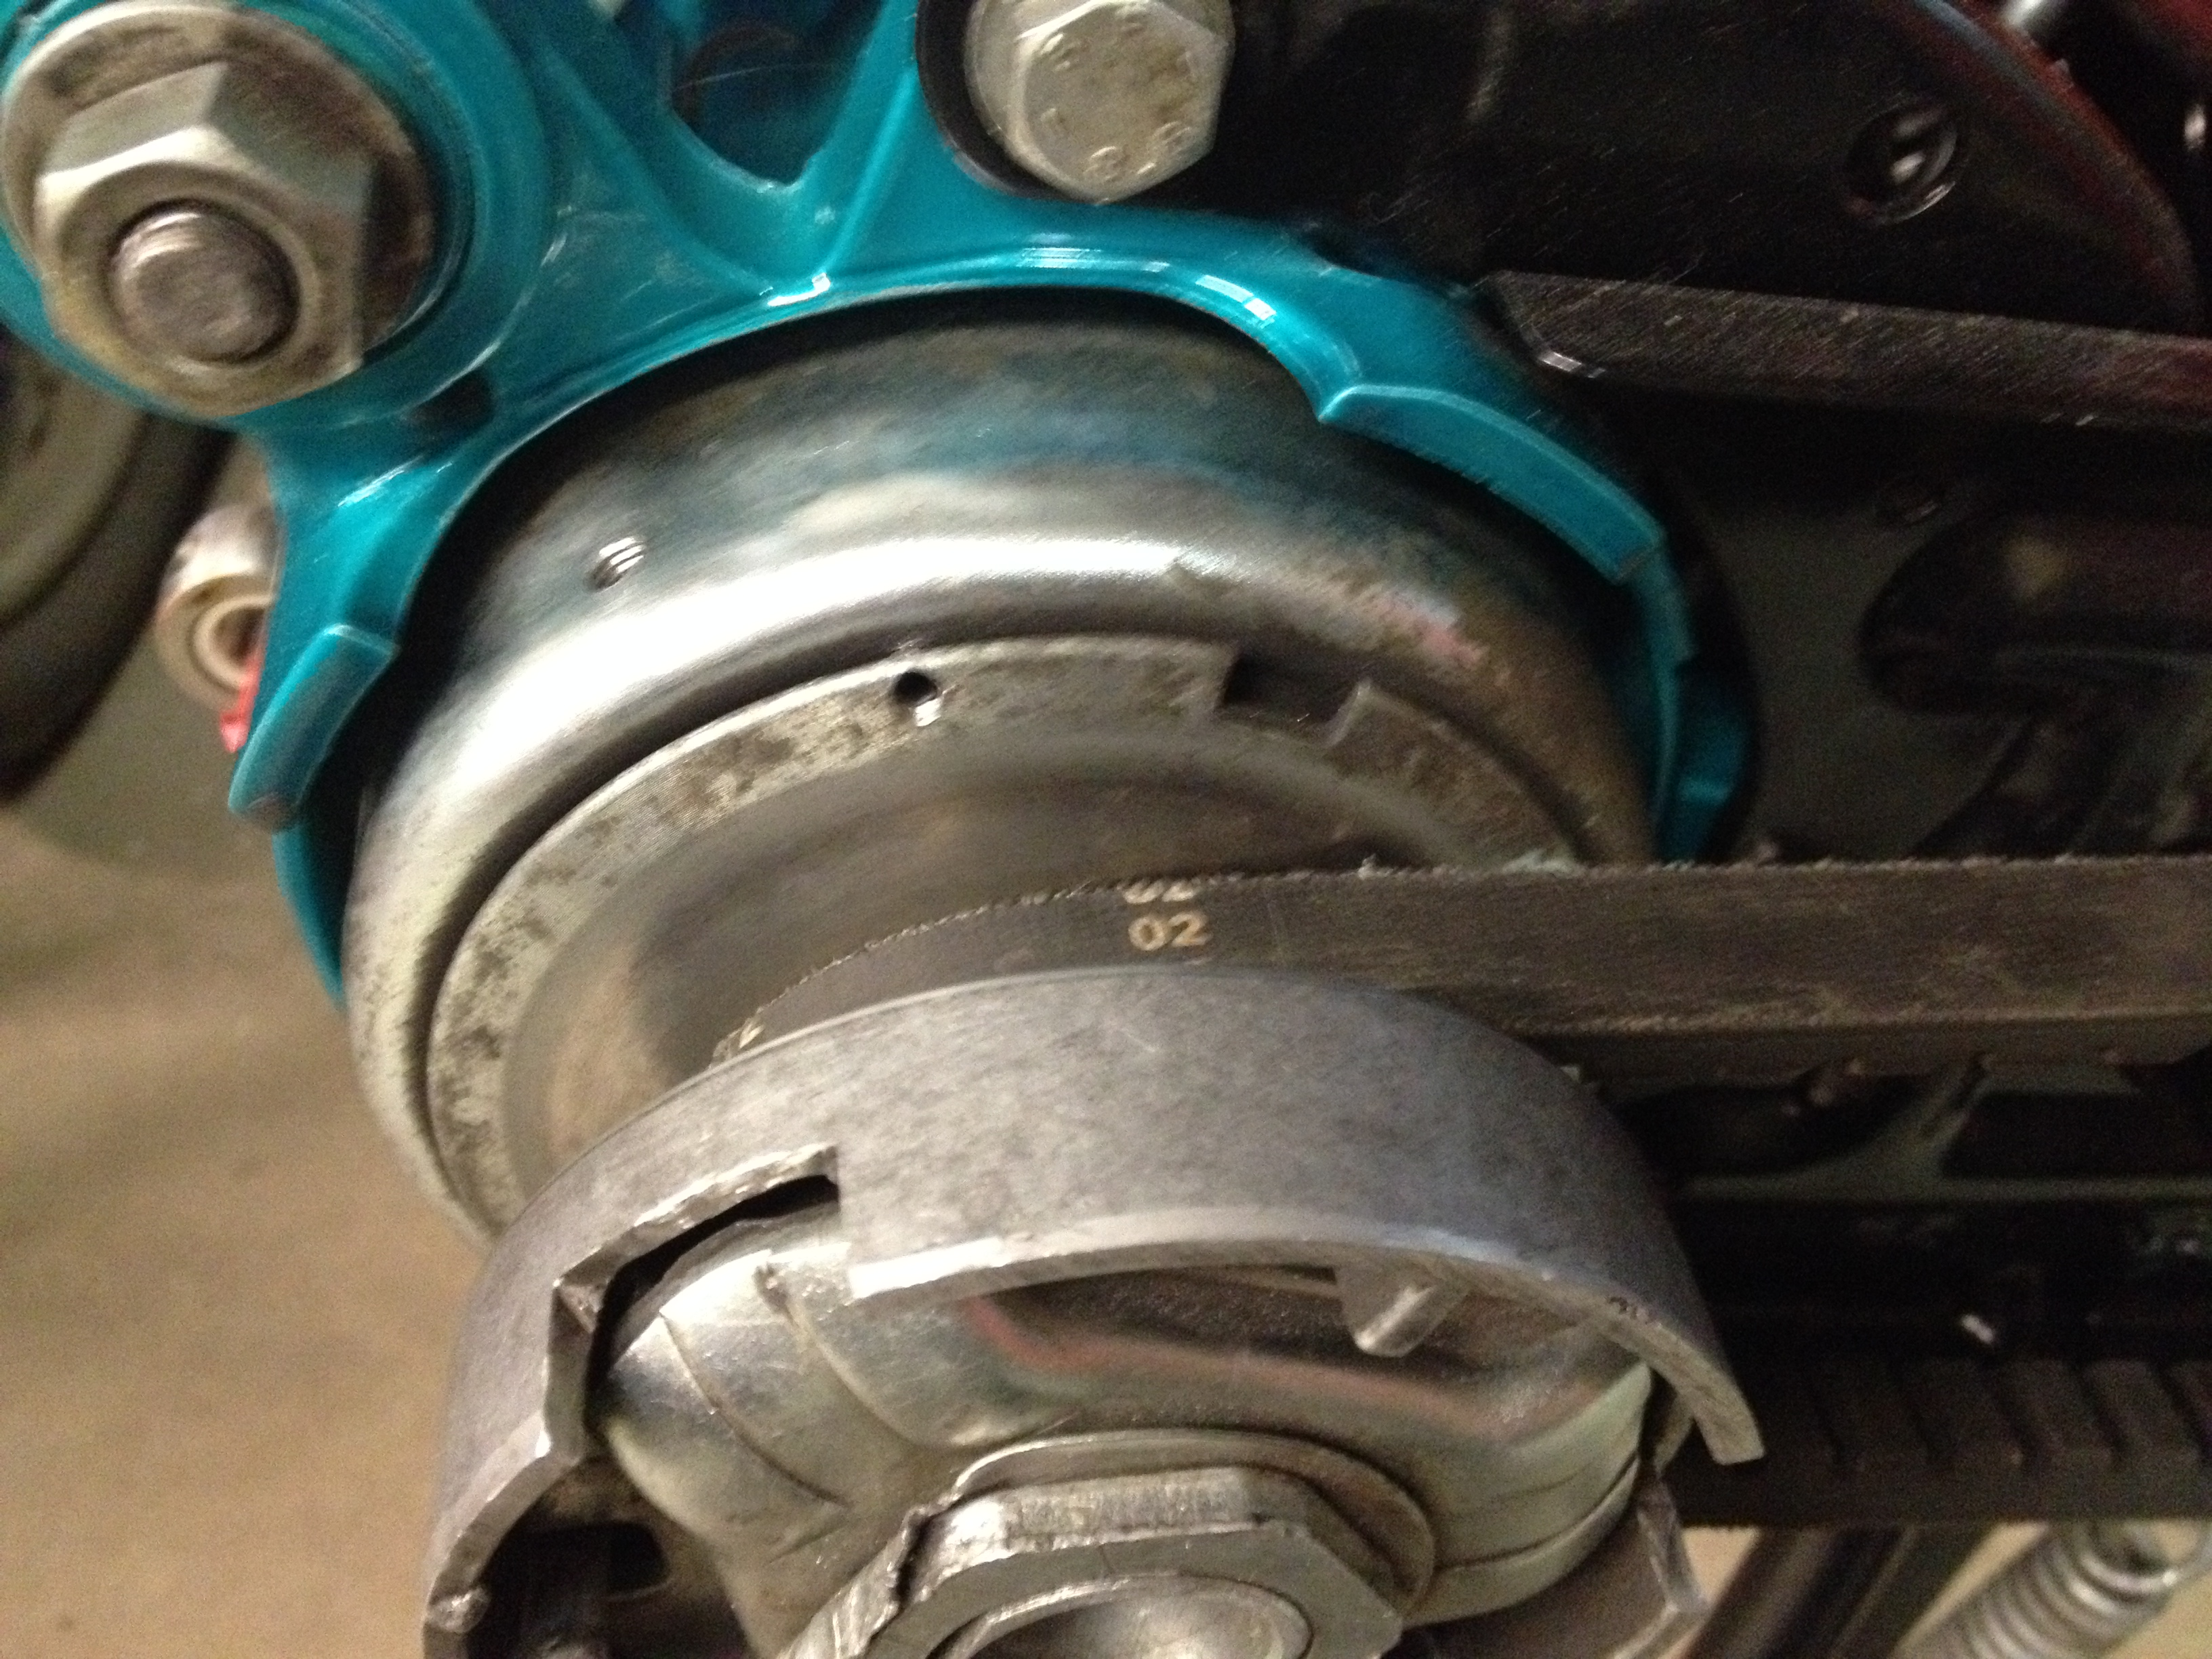 Miami starter clutch mod on bike.JPG